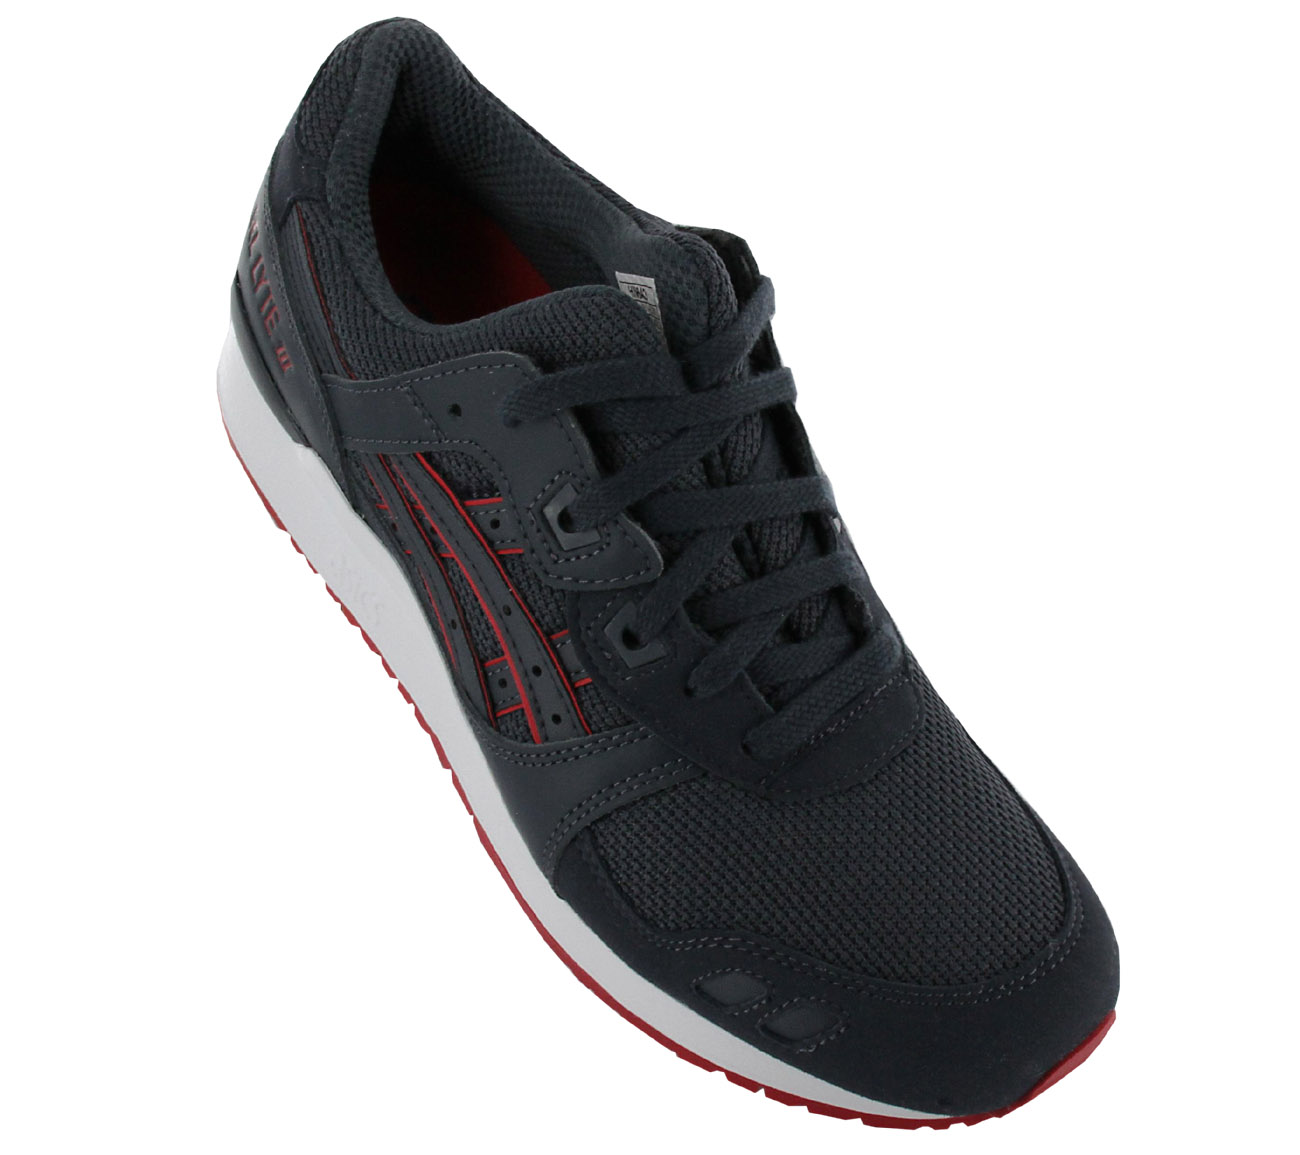 the latest 53a41 34838 Asics Gel-Lyte III 3 Shoes Men s Sneakers Navy Blue Gym Shoe New ...